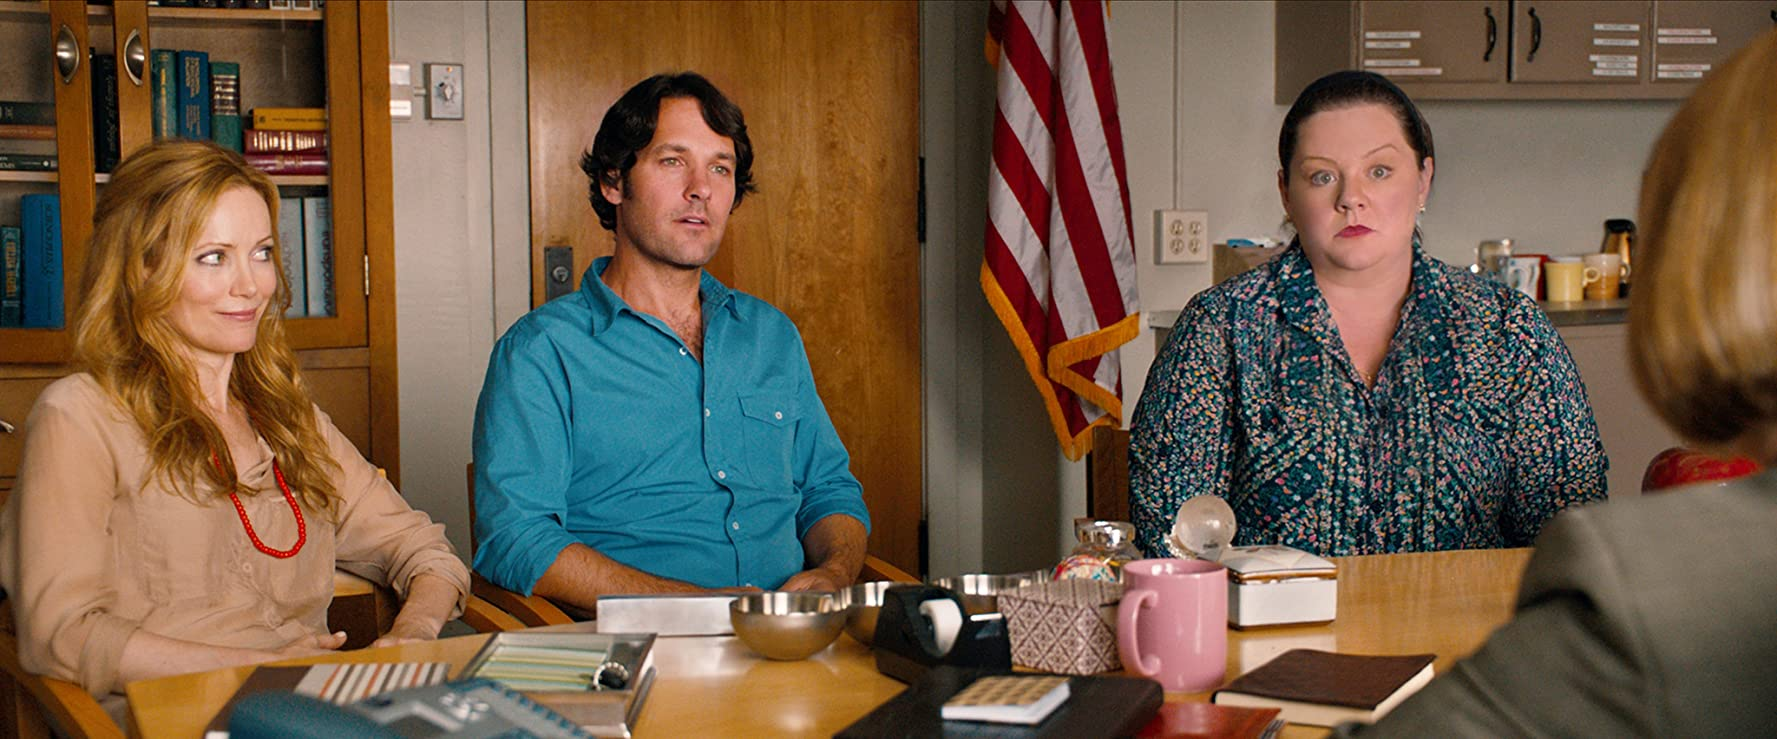 Leslie Mann, Melissa McCarthy, and Paul Rudd in This Is 40 (2012)